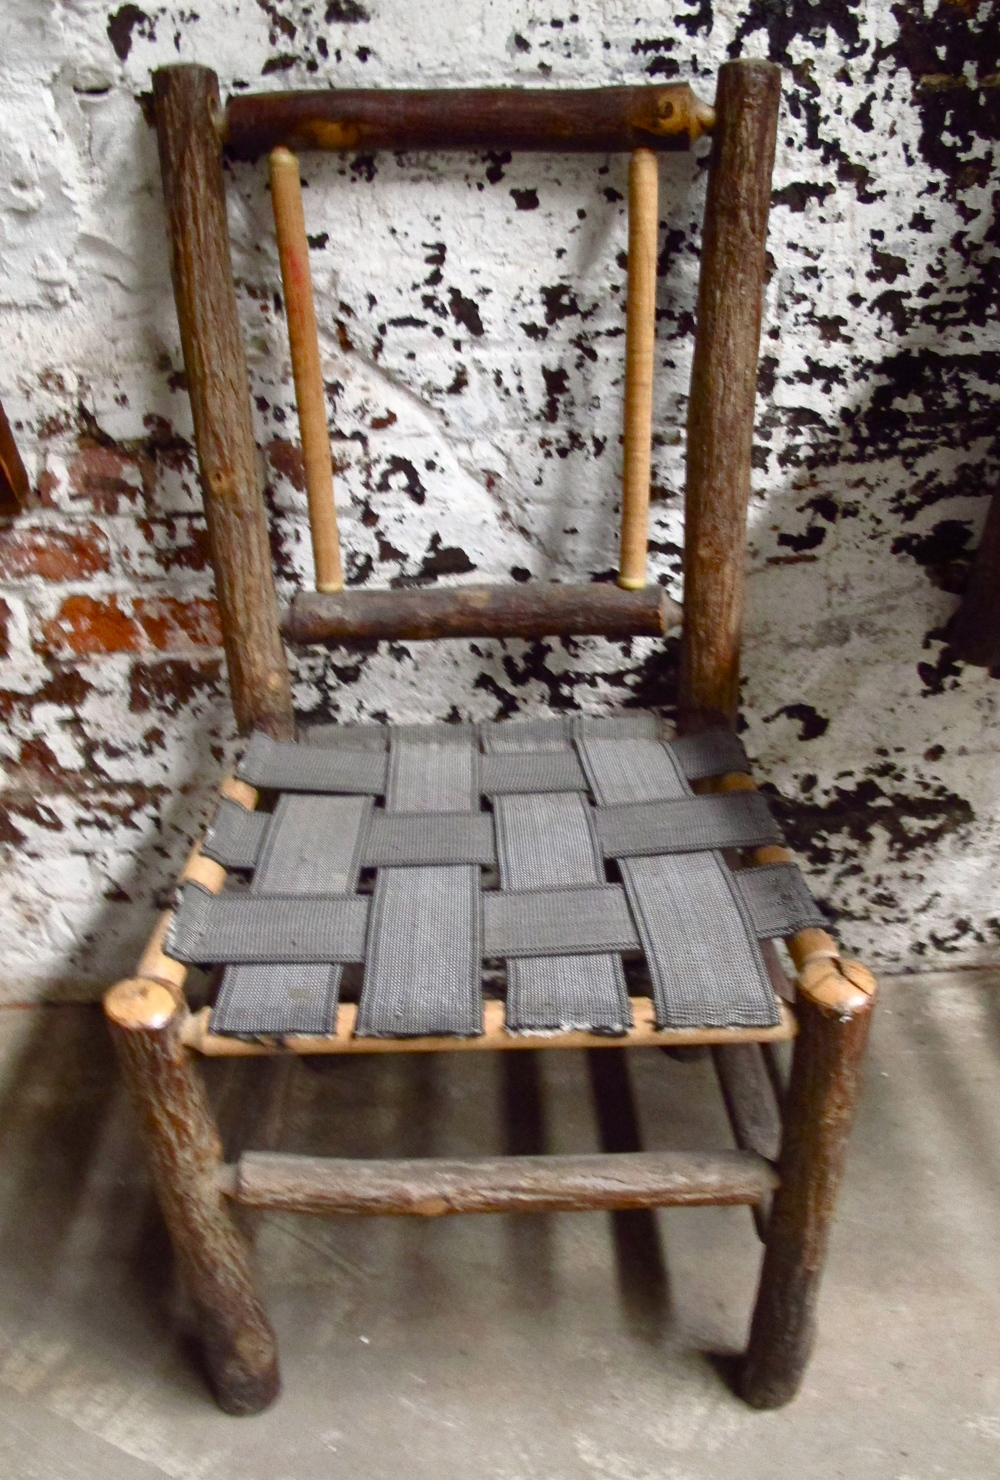 'Gretel' Weave Seat Wood Chair $30 ('Hansel & Gretel' pair)